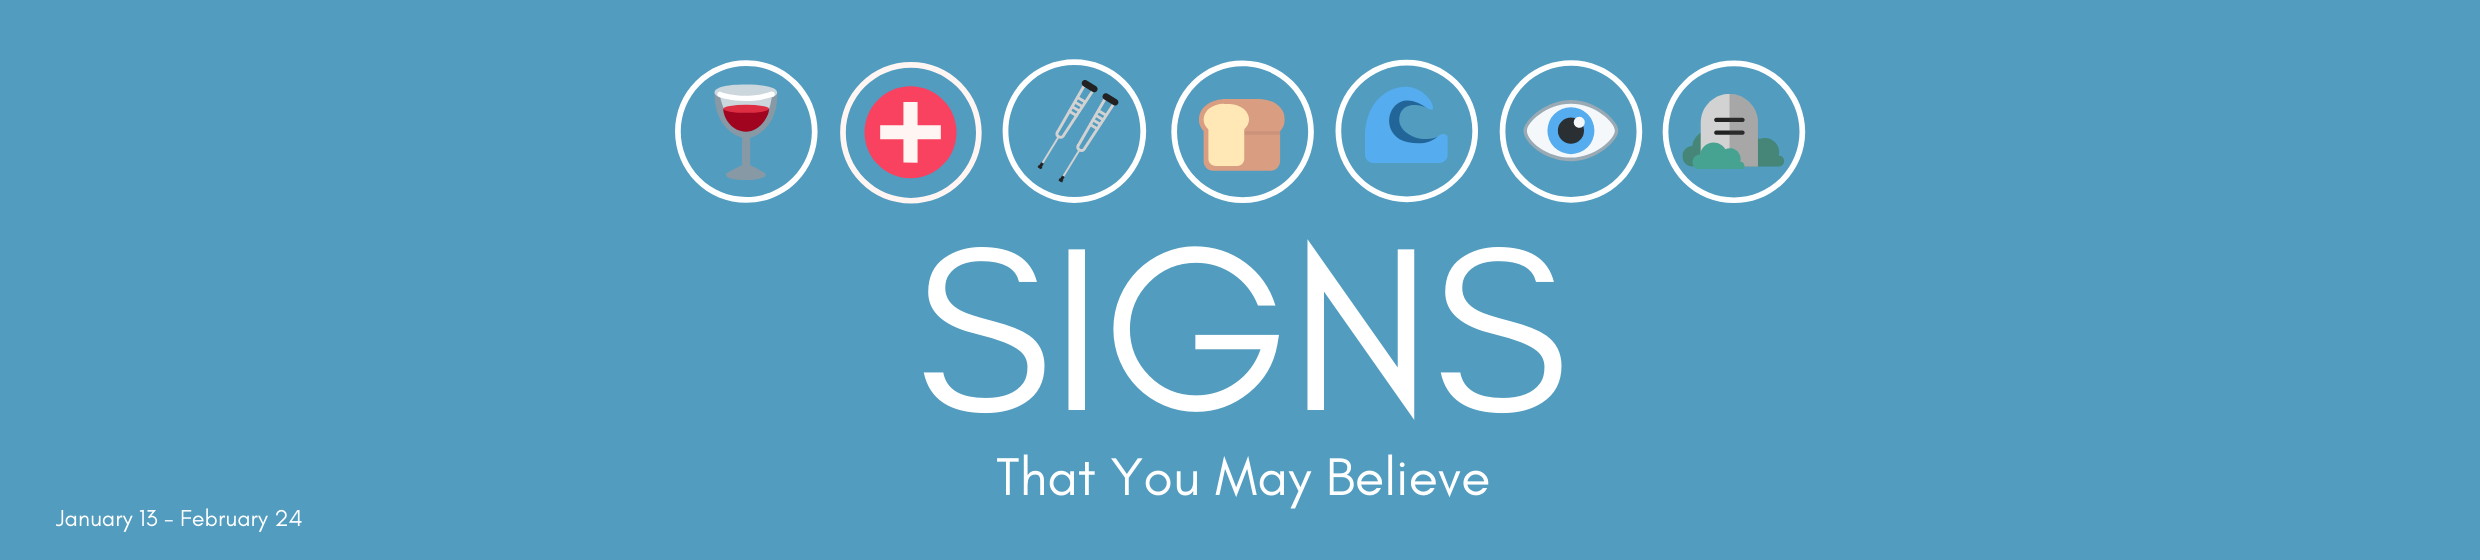 """In this series, we will be looking at each of the signs (or miracles) that John outlines in his gospel. These signs of Jesus were used """"to teach deep underlying lessons to his disciples.""""  Although these signs were performed a long time ago, the truths they carry with them show us very clearly who Jesus is and how we should live today."""